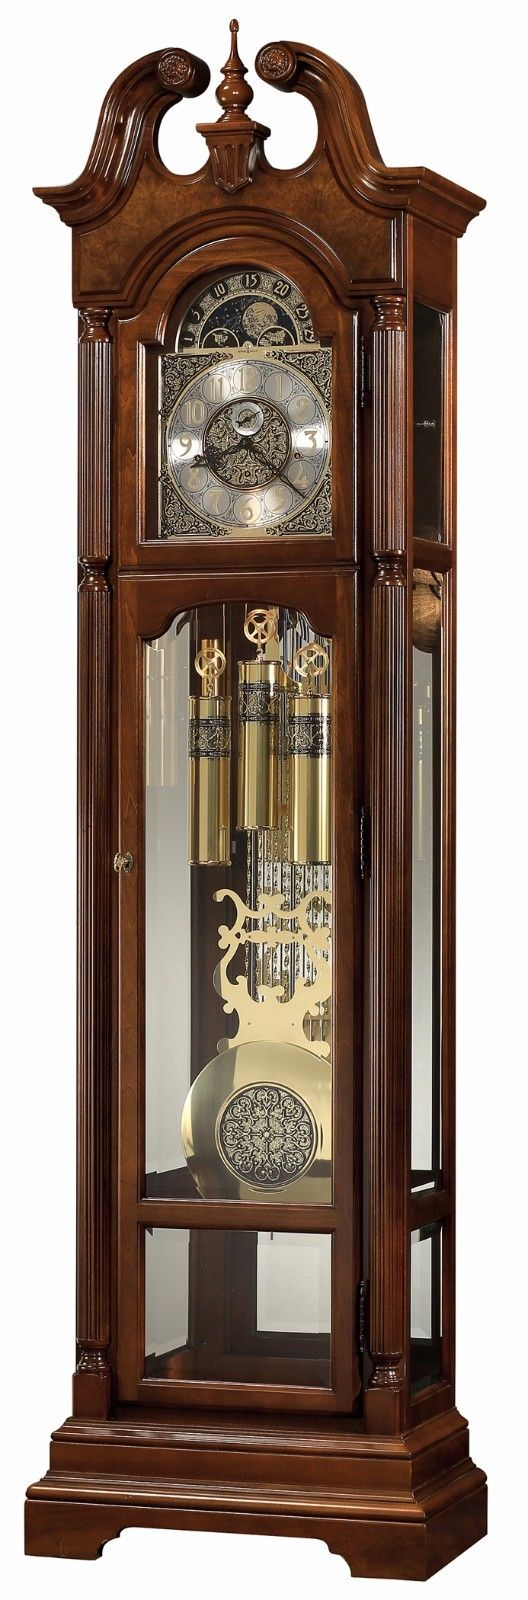 Howard Miller Terance Grandfather Floor Clock 611-240 611240 FREE Shipping